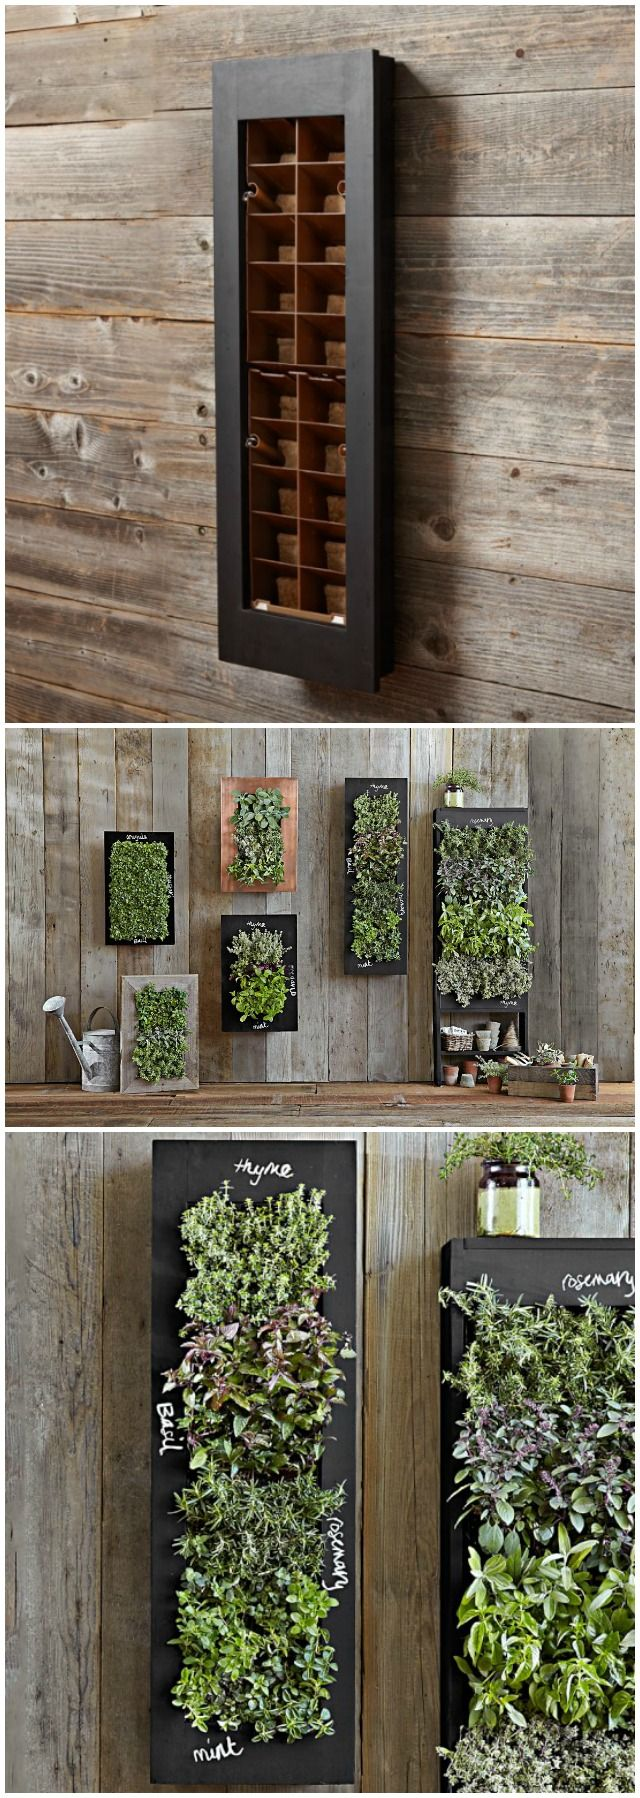 Chalkboard Rectangle Wall Mounted Frame Kit | Williams ...